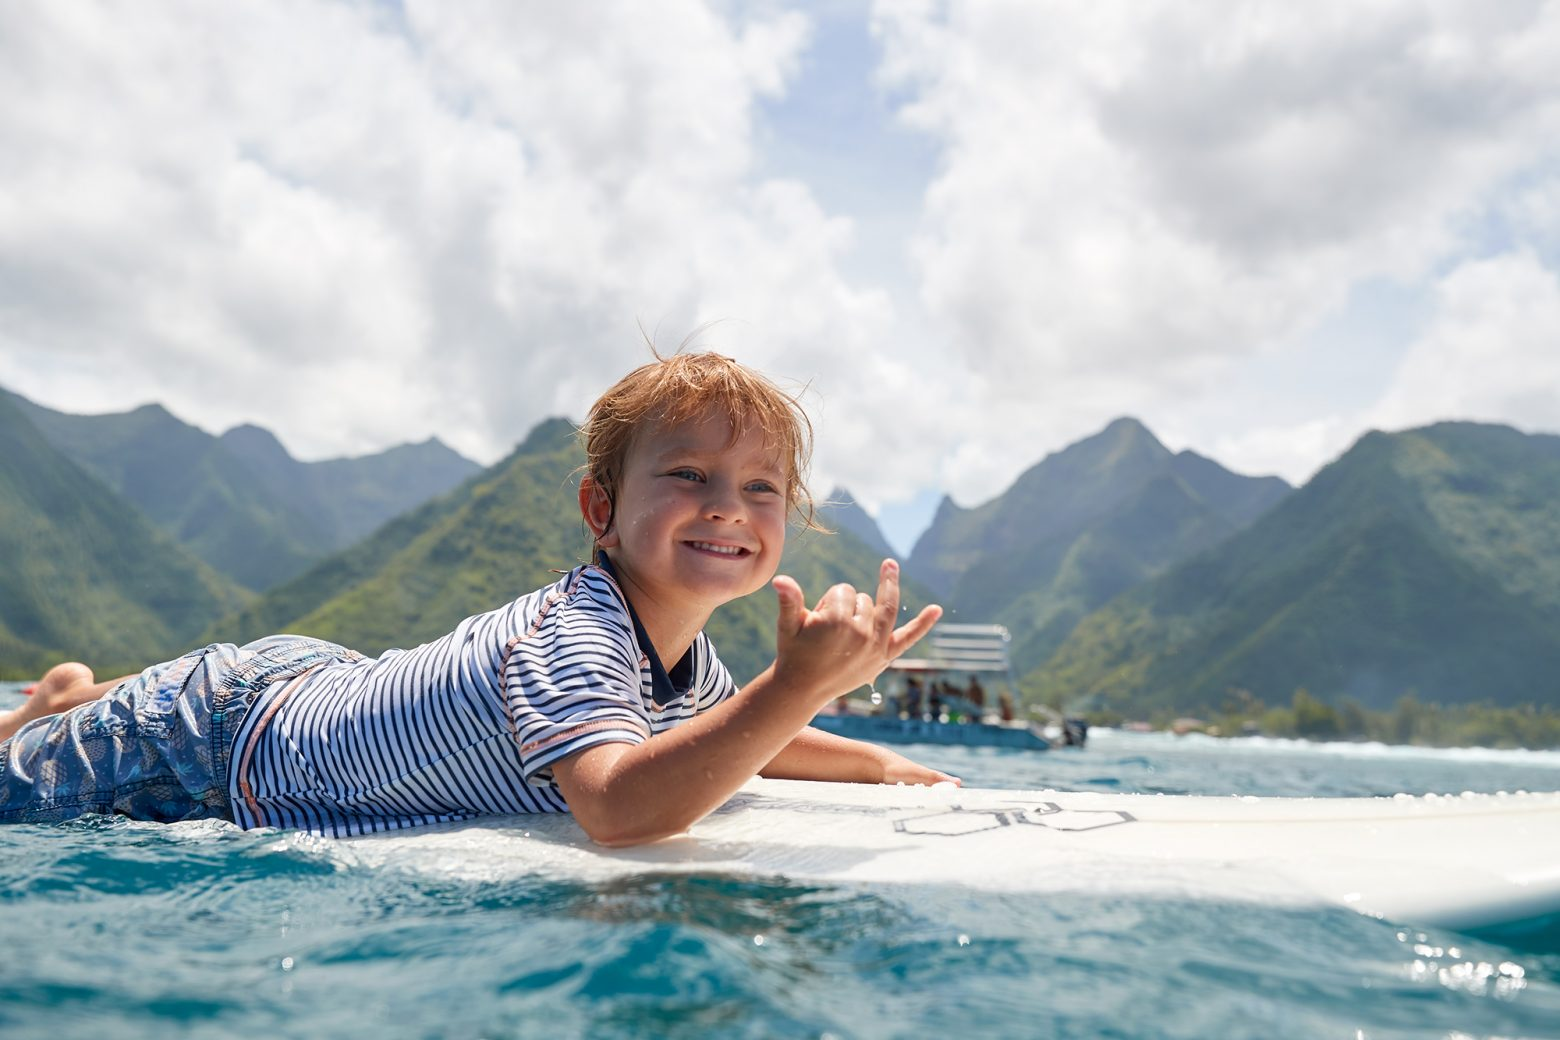 My little one, Spike, insisting to paddle into one at Teahupoo (turned down a tow)